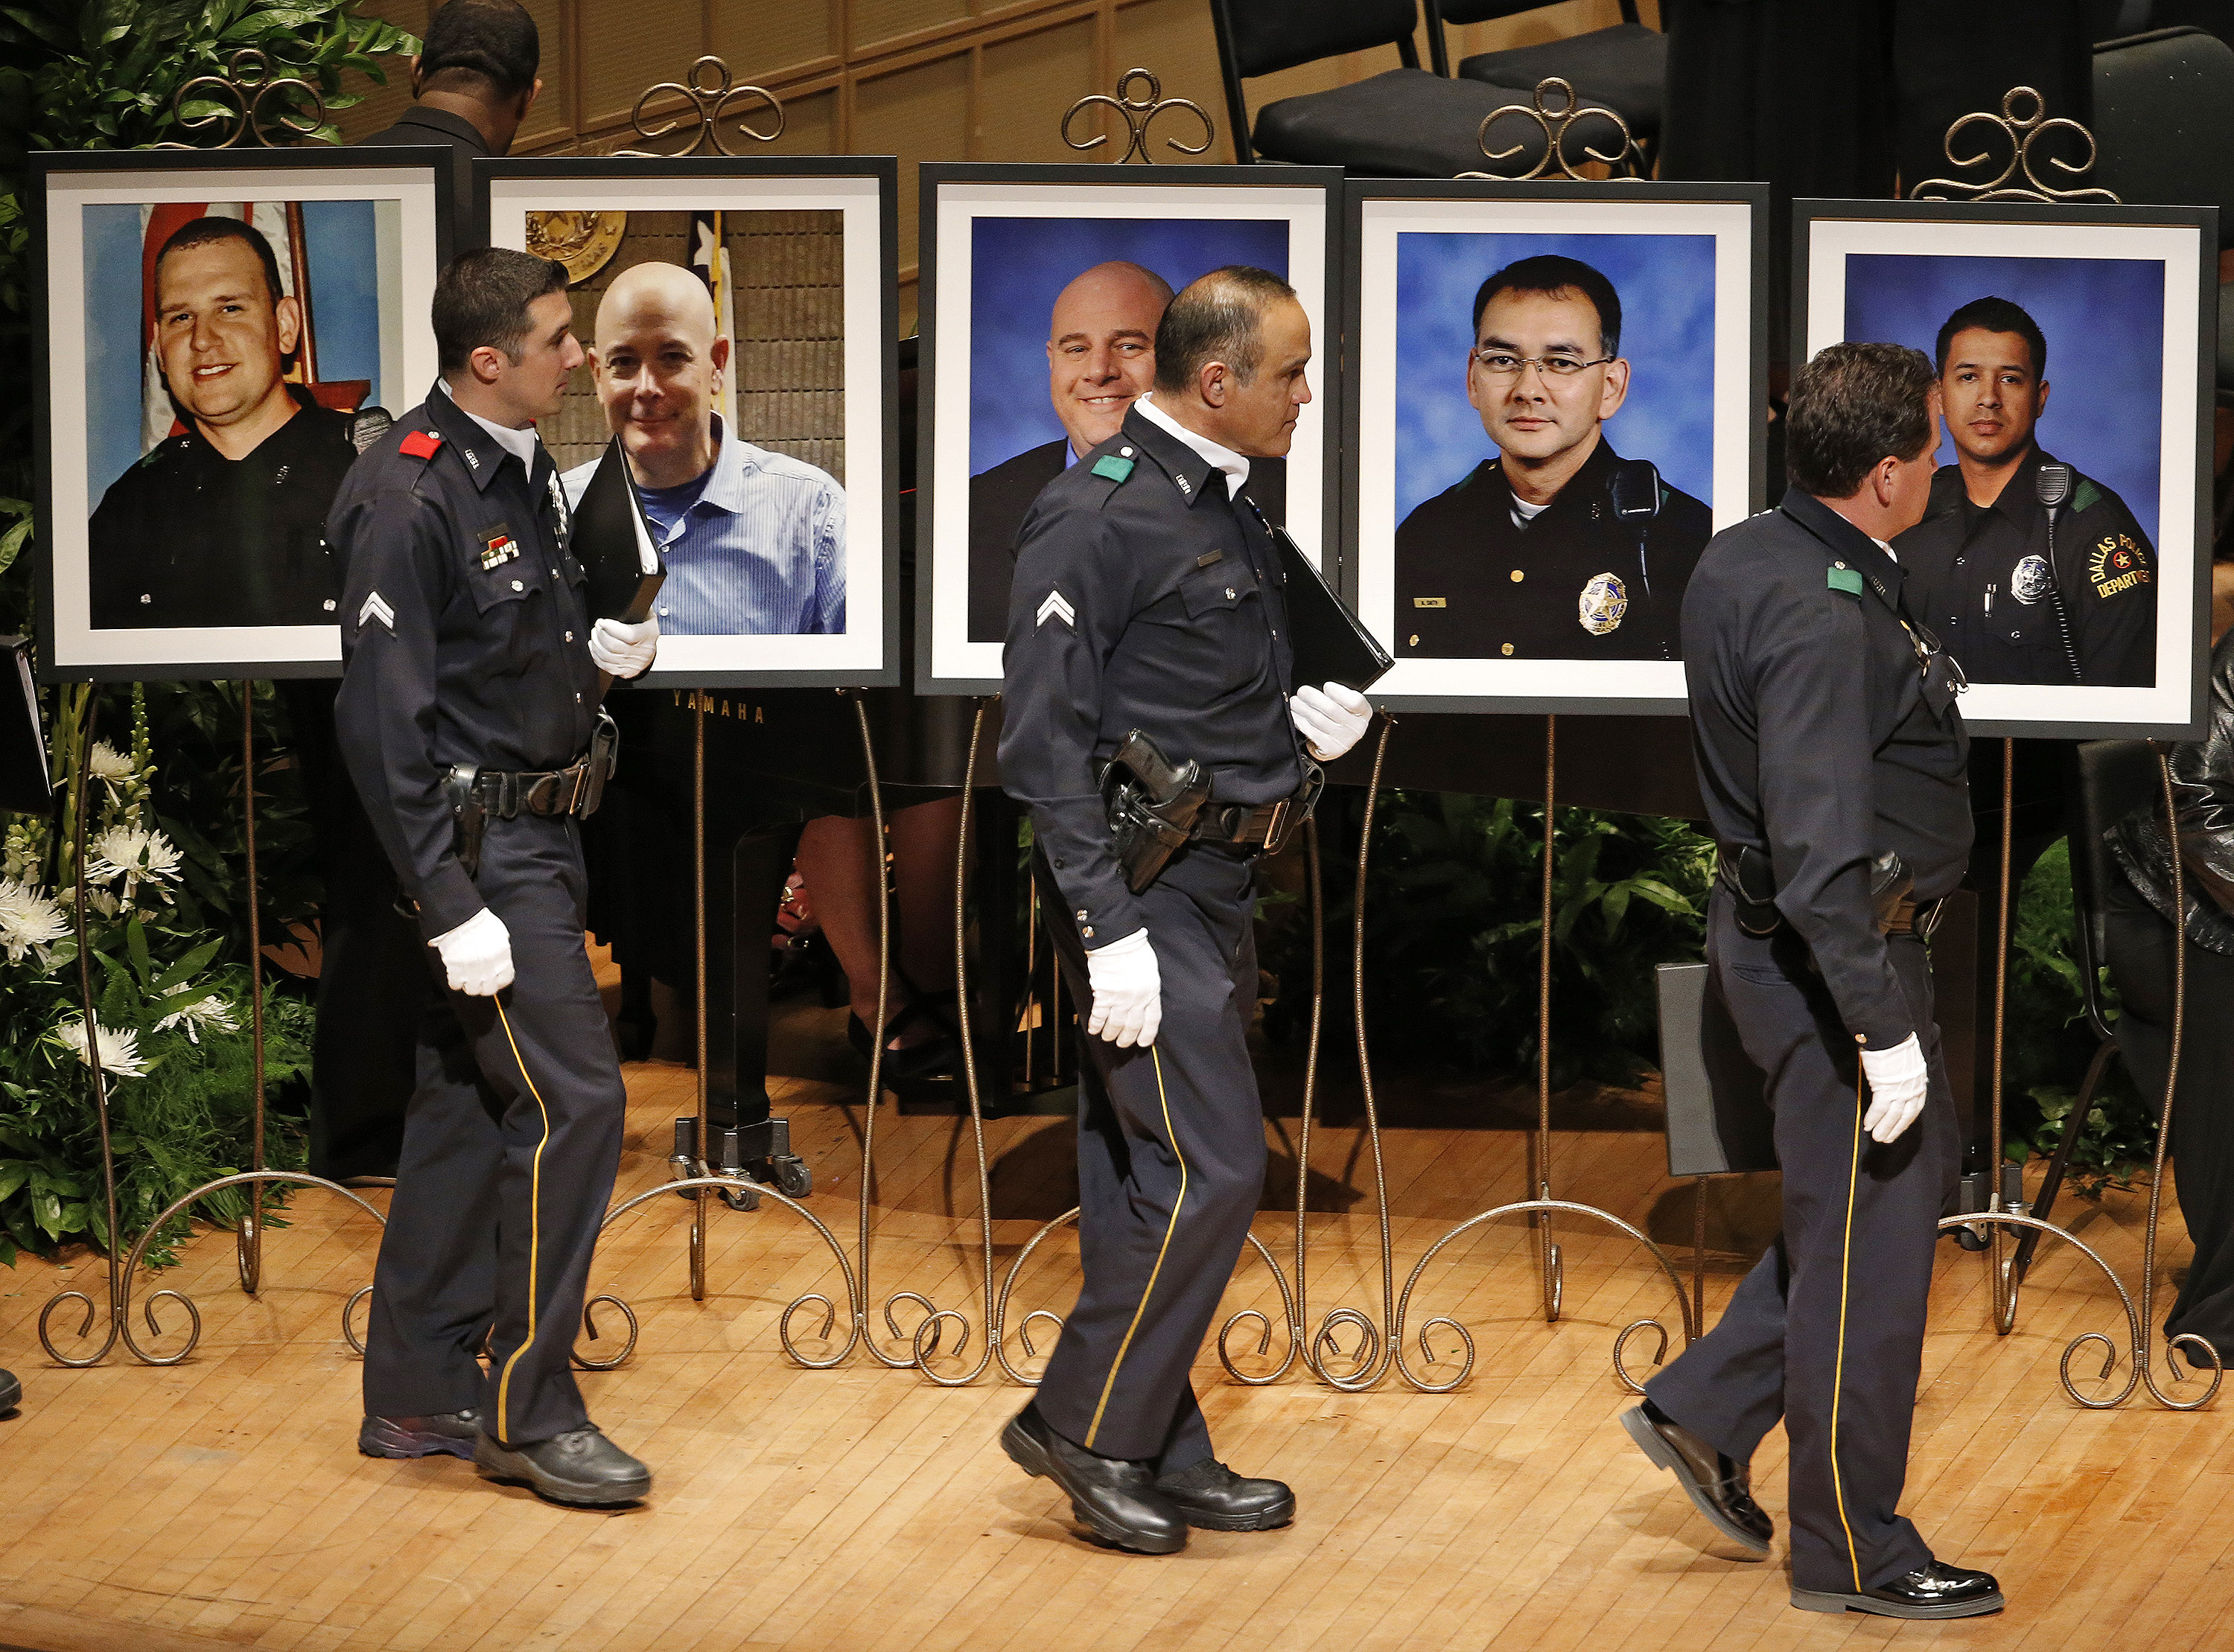 Members of the Dallas Police Department Choir walk past portraits of their fallen comrades during a memorial for five Dallas and DART police officers on July 12, 2016 at the Morton H. Meyerson Symphony Center in Dallas.